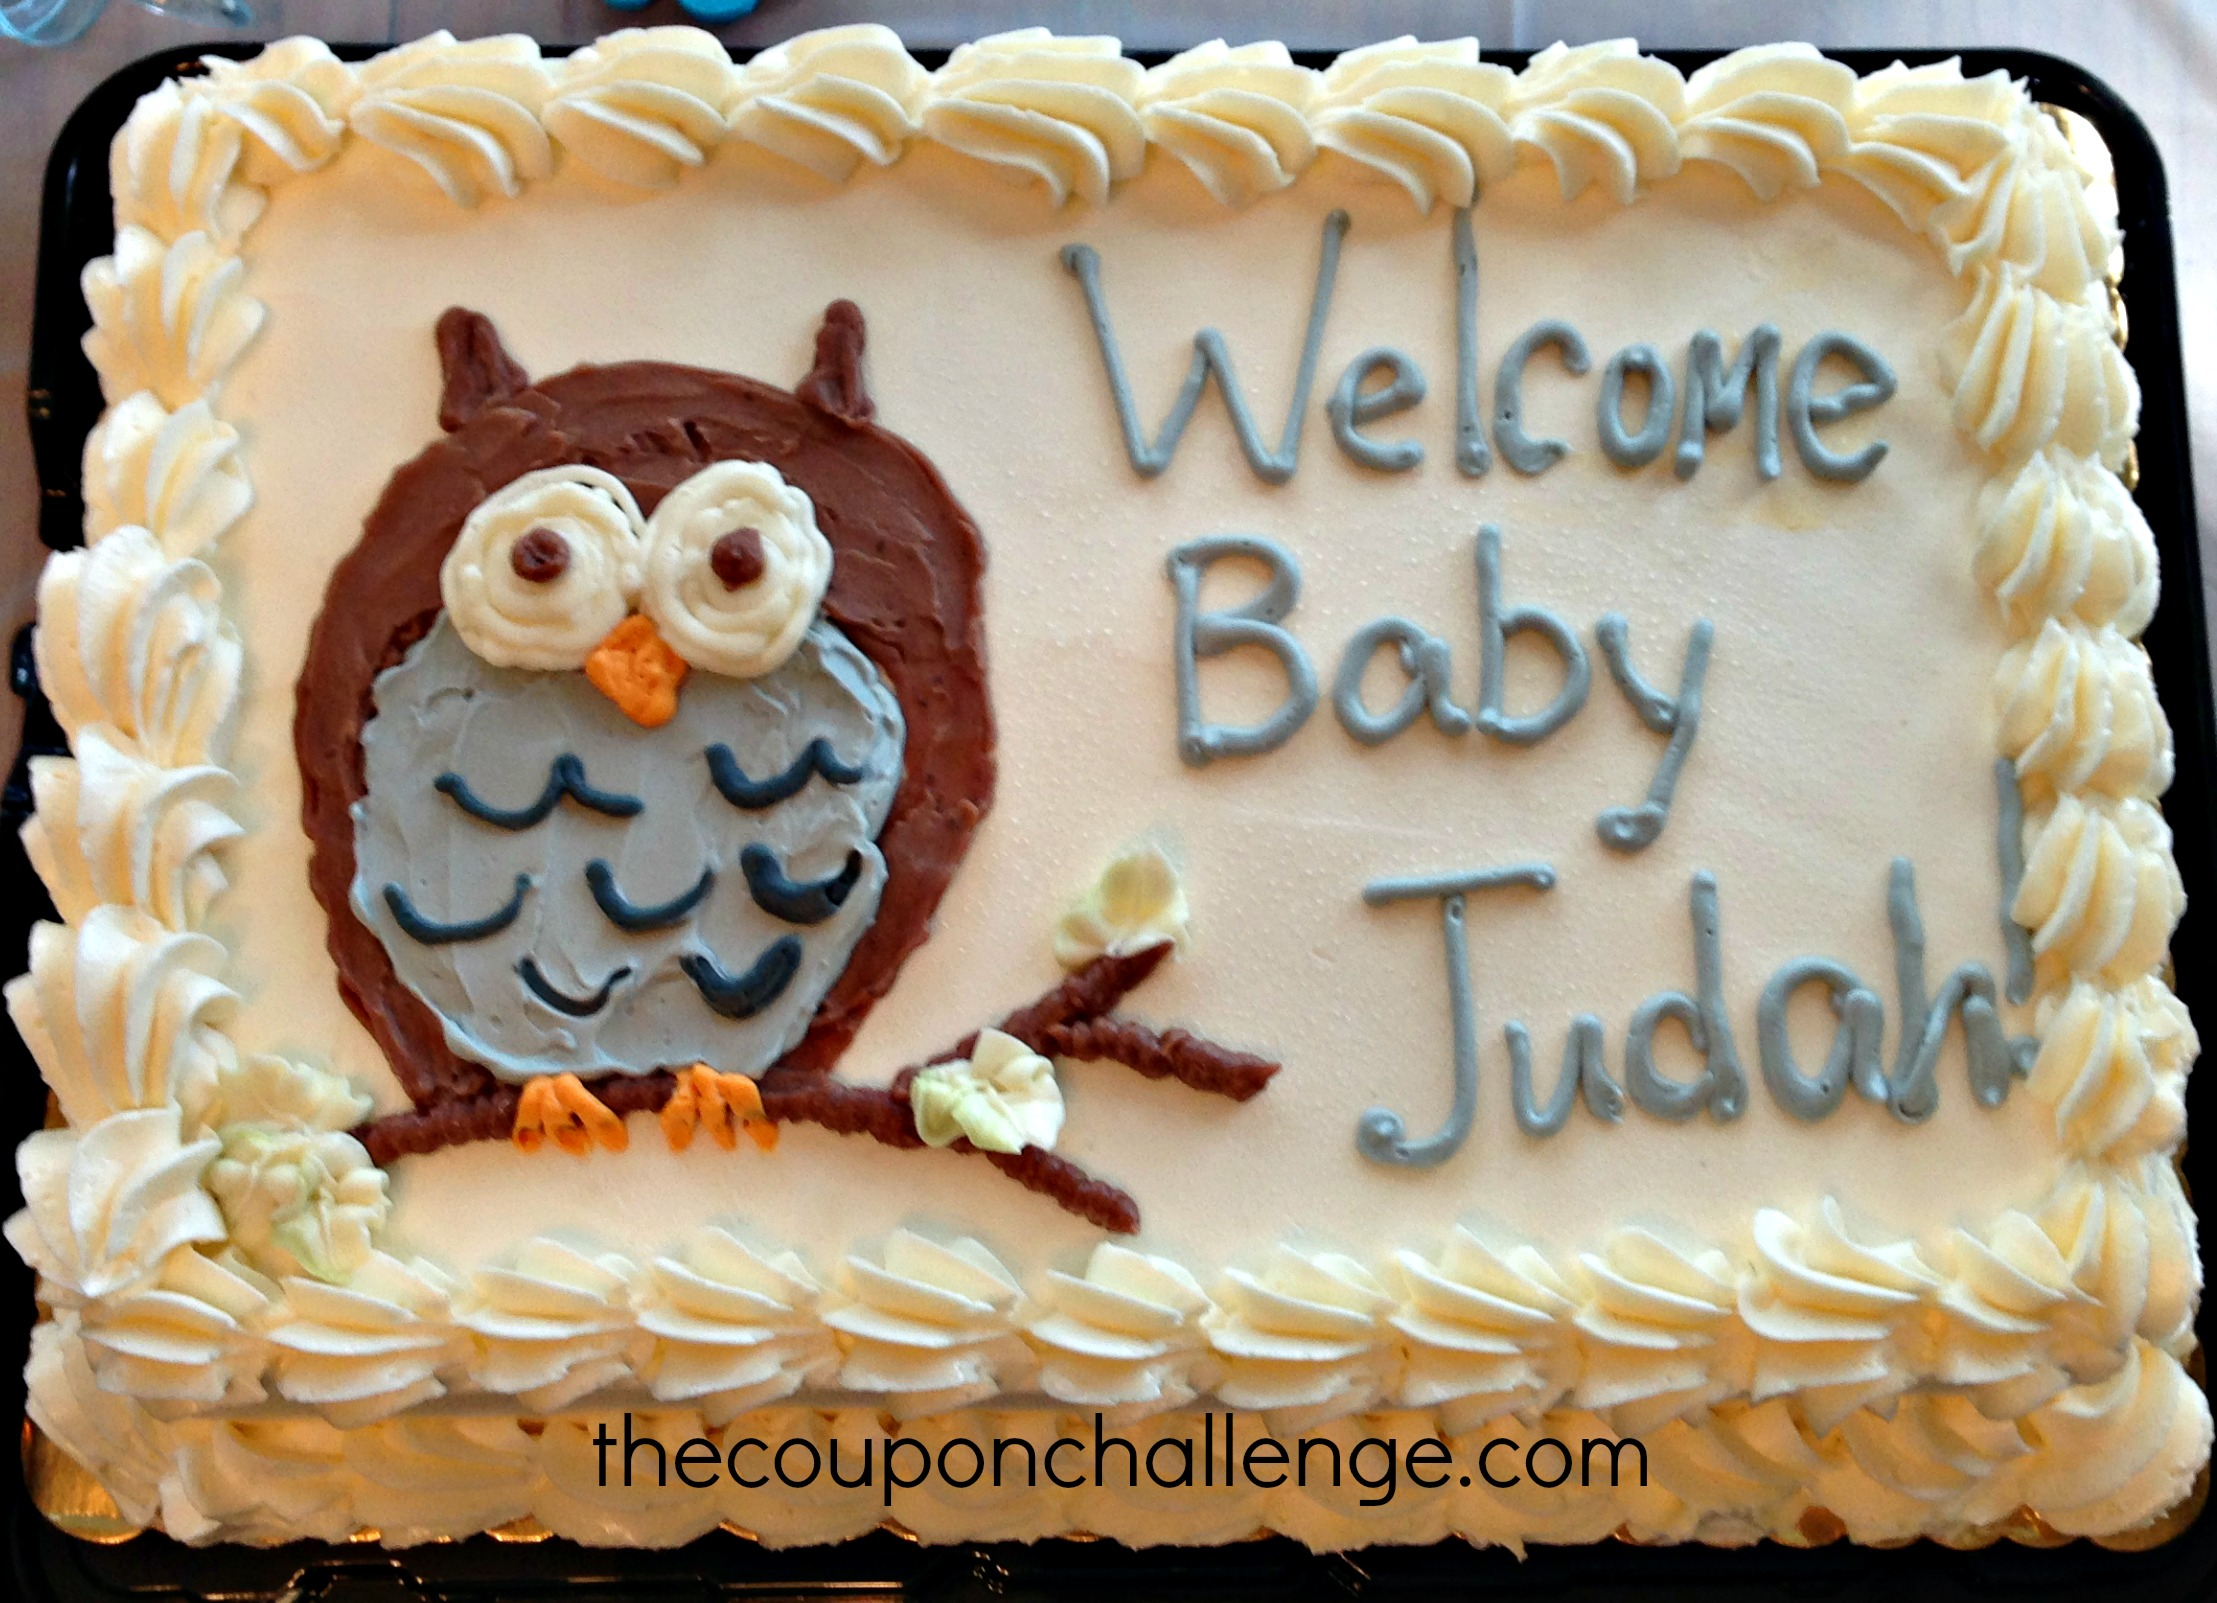 Whole Foods Market Custom Cakes Review - The Coupon Challenge